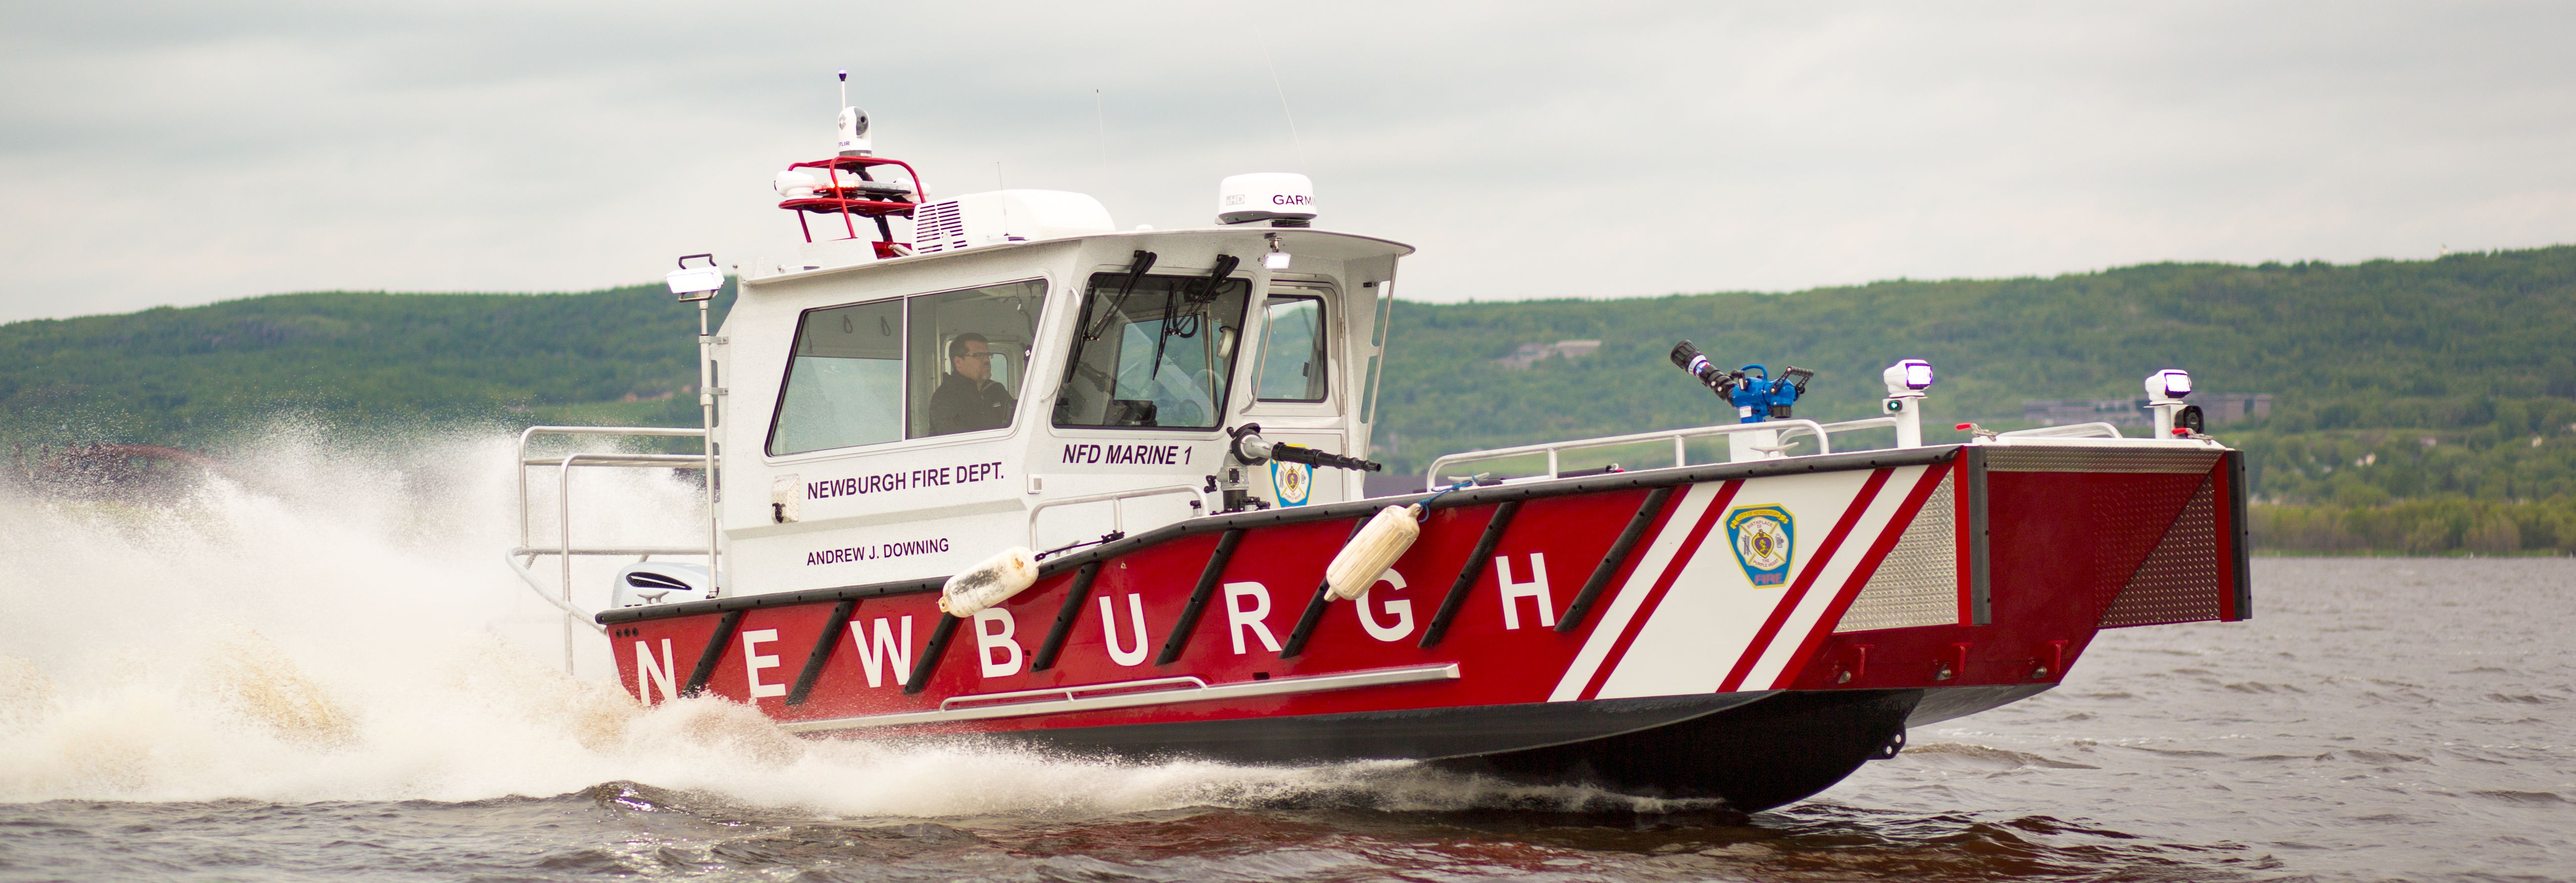 Honda Newburgh Fireboat Delivery & FIRE 2016 Expo - Lake Assault